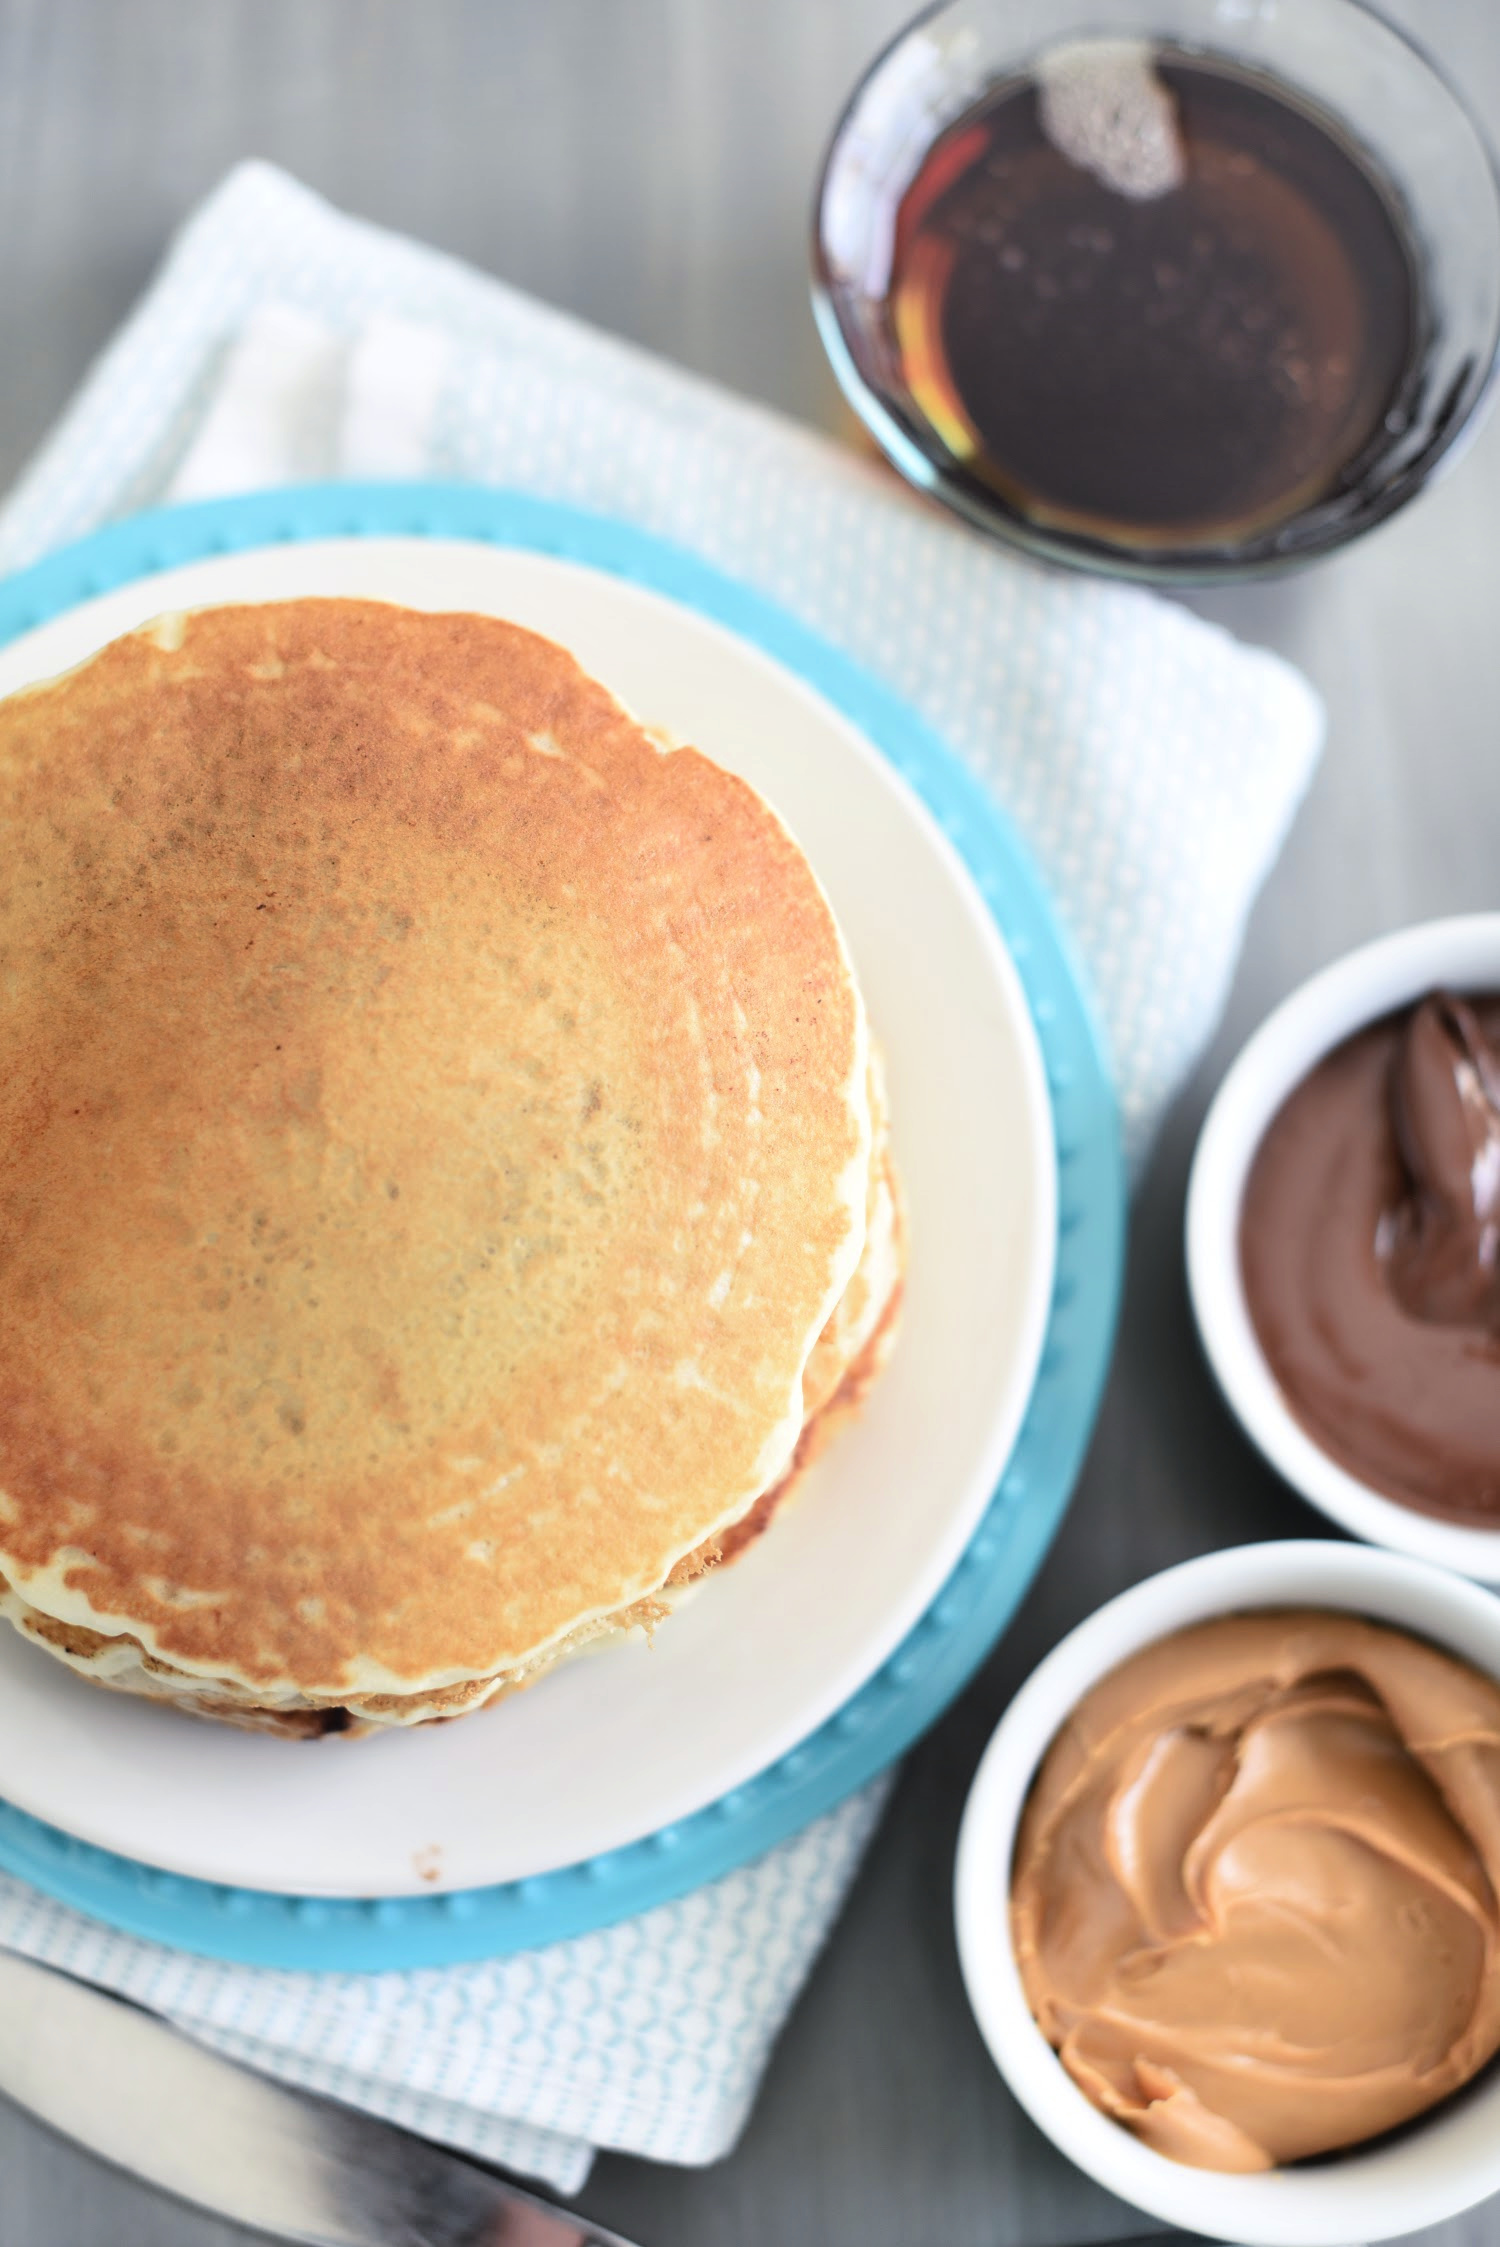 Nutella and Peanut Butter Stuffed Pancakes